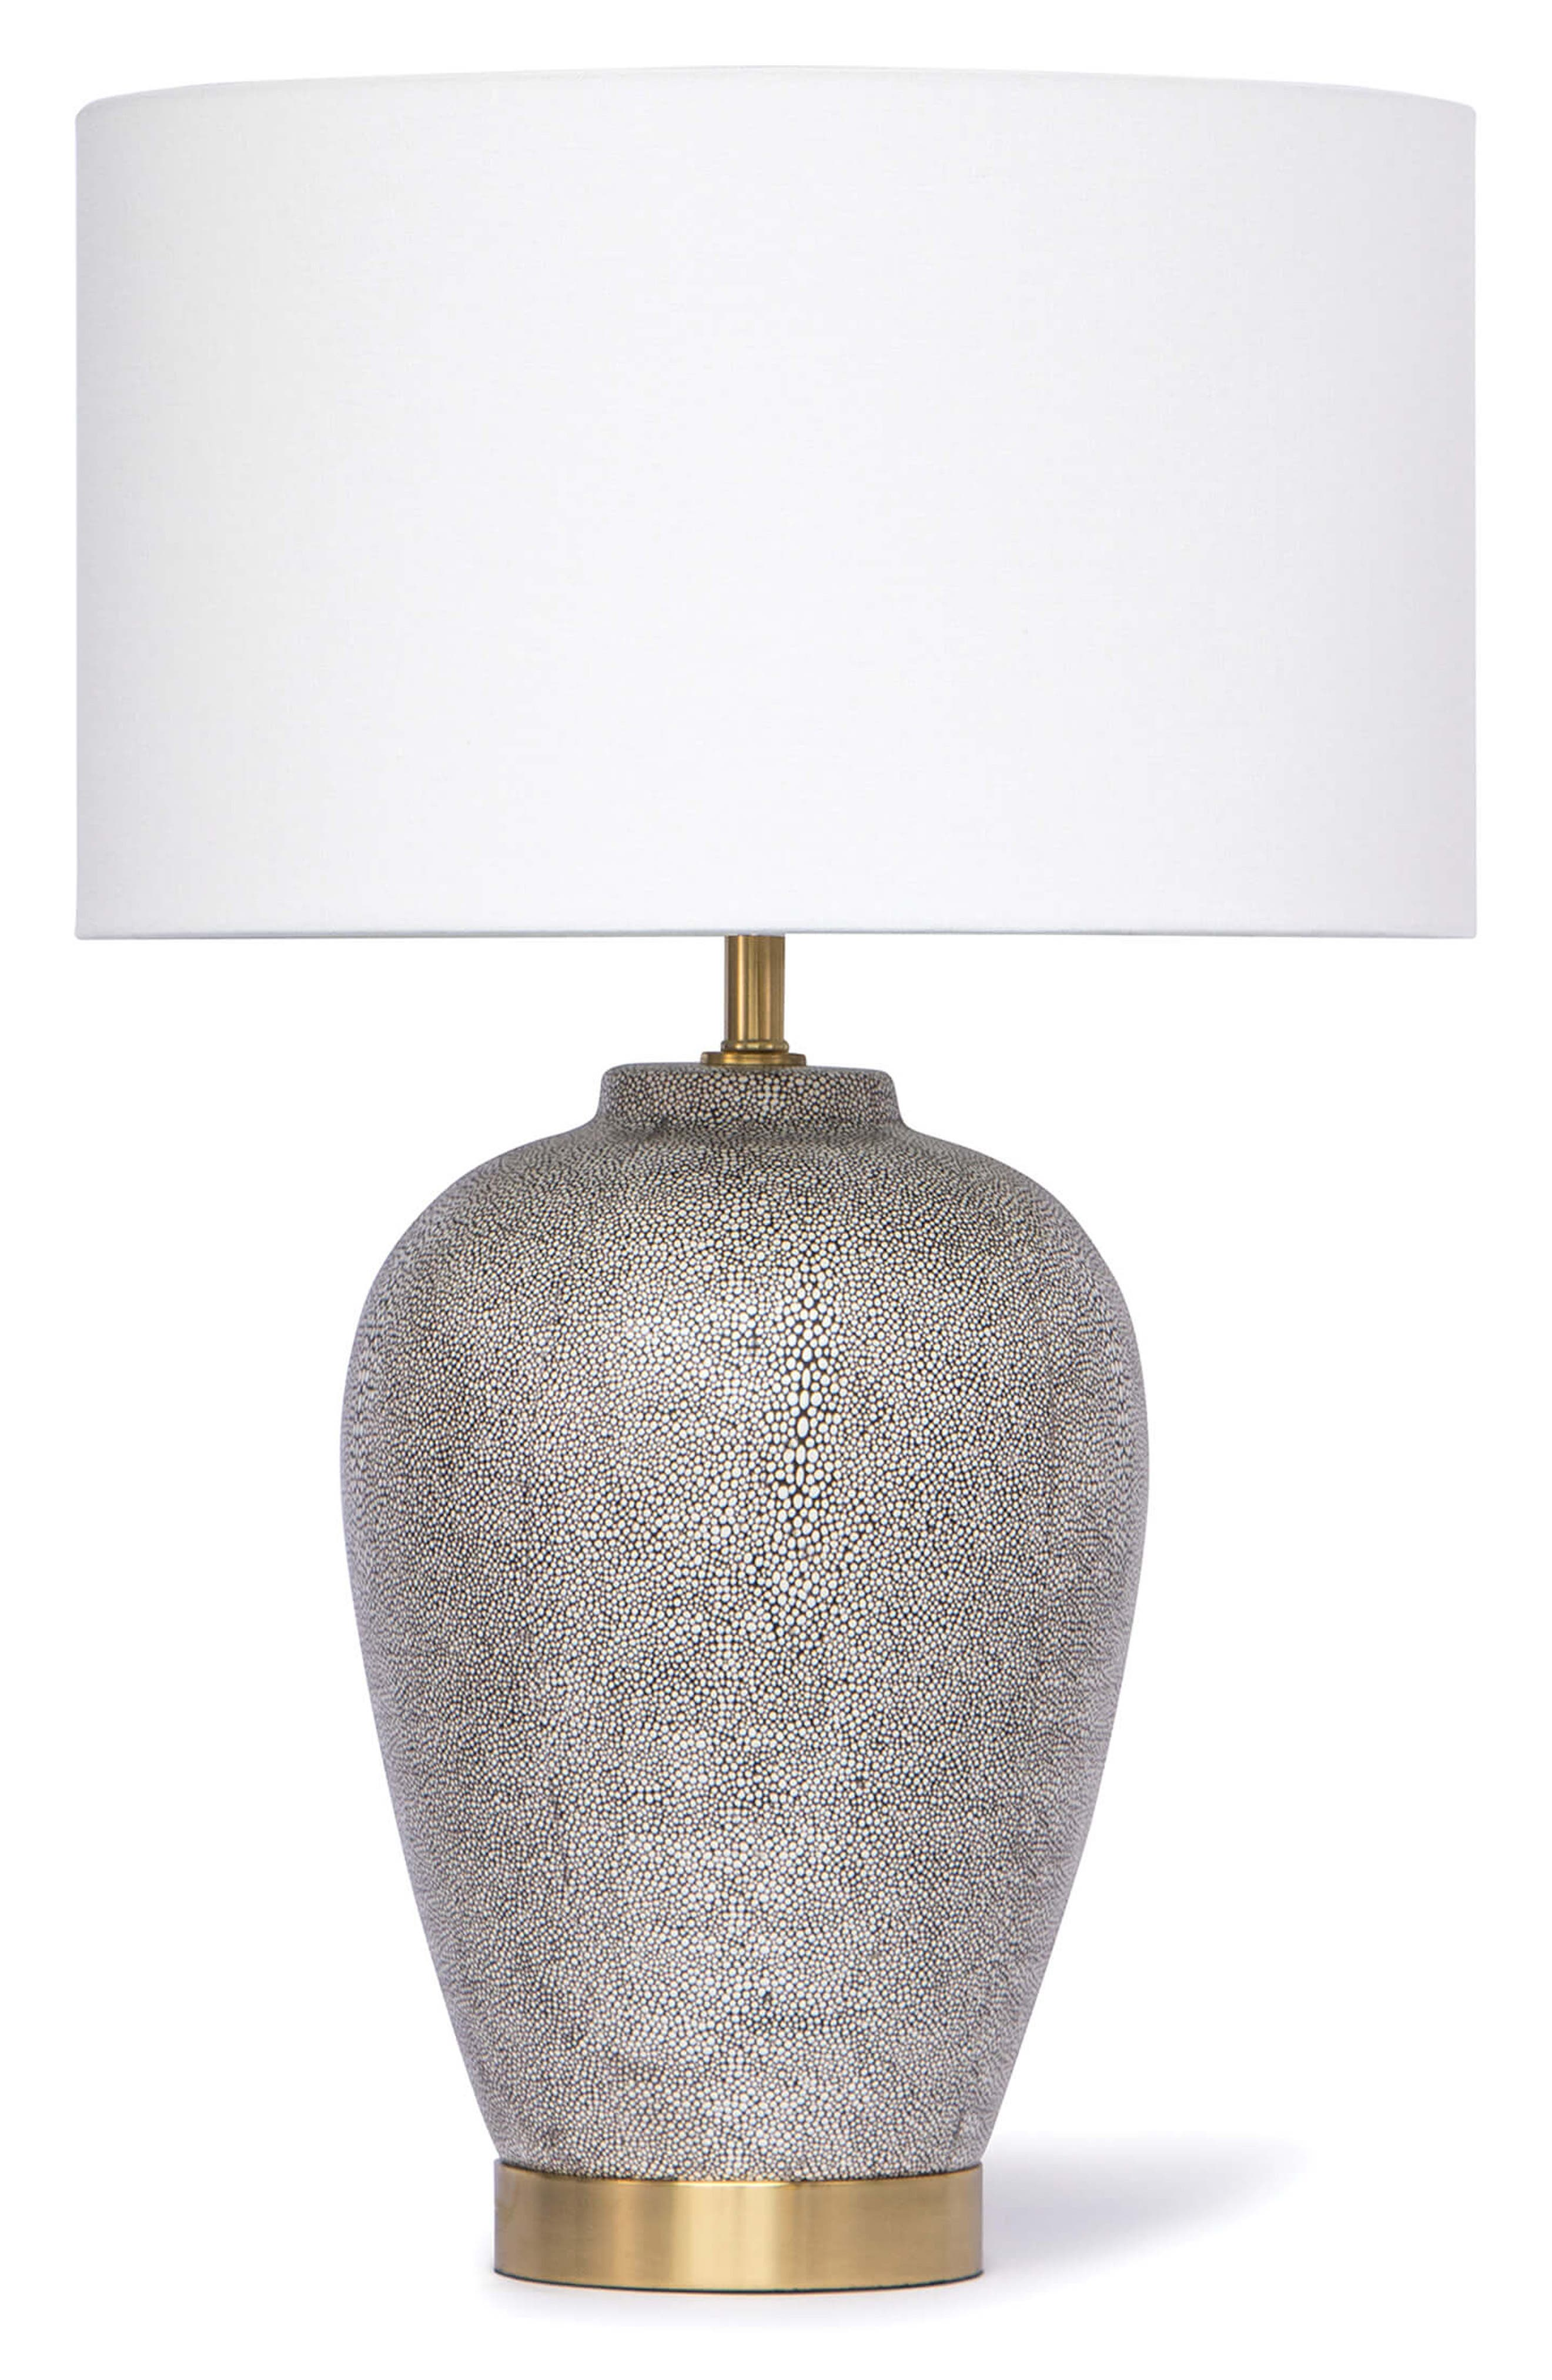 Presley Shagreen Ceramic Table Lamp,                         Main,                         color, CHARCOAL